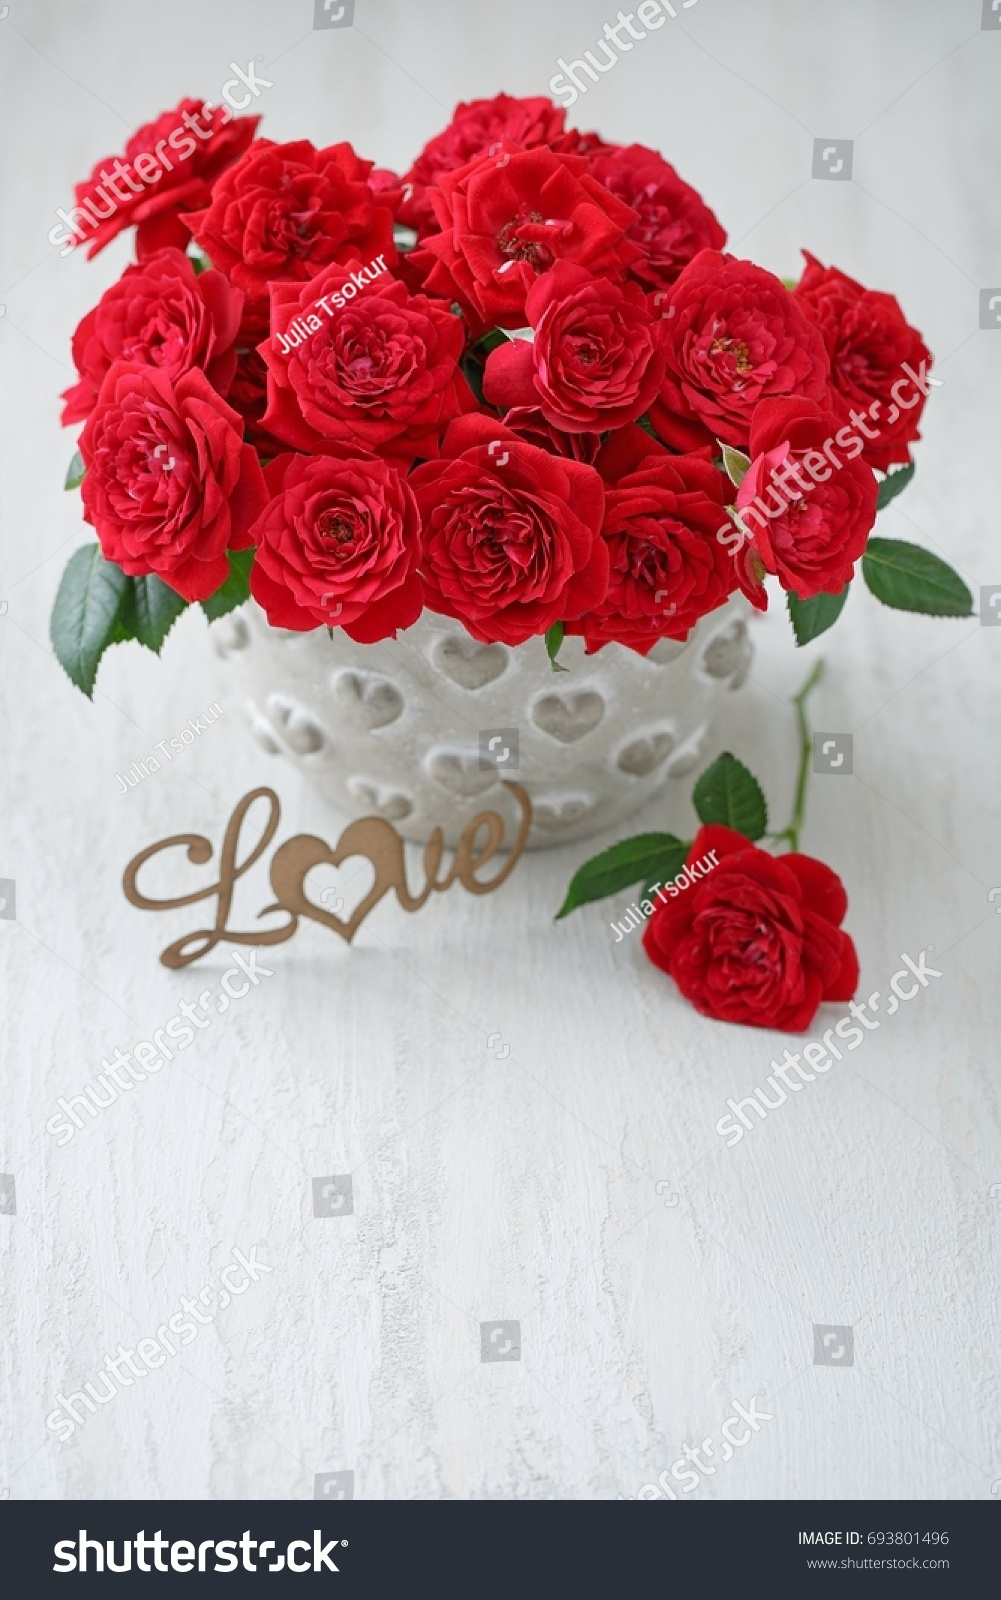 Lovely bunch flowers beautiful fresh roses stock photo edit now lovely bunch of flowers autiful fresh roses flowers in a vase izmirmasajfo